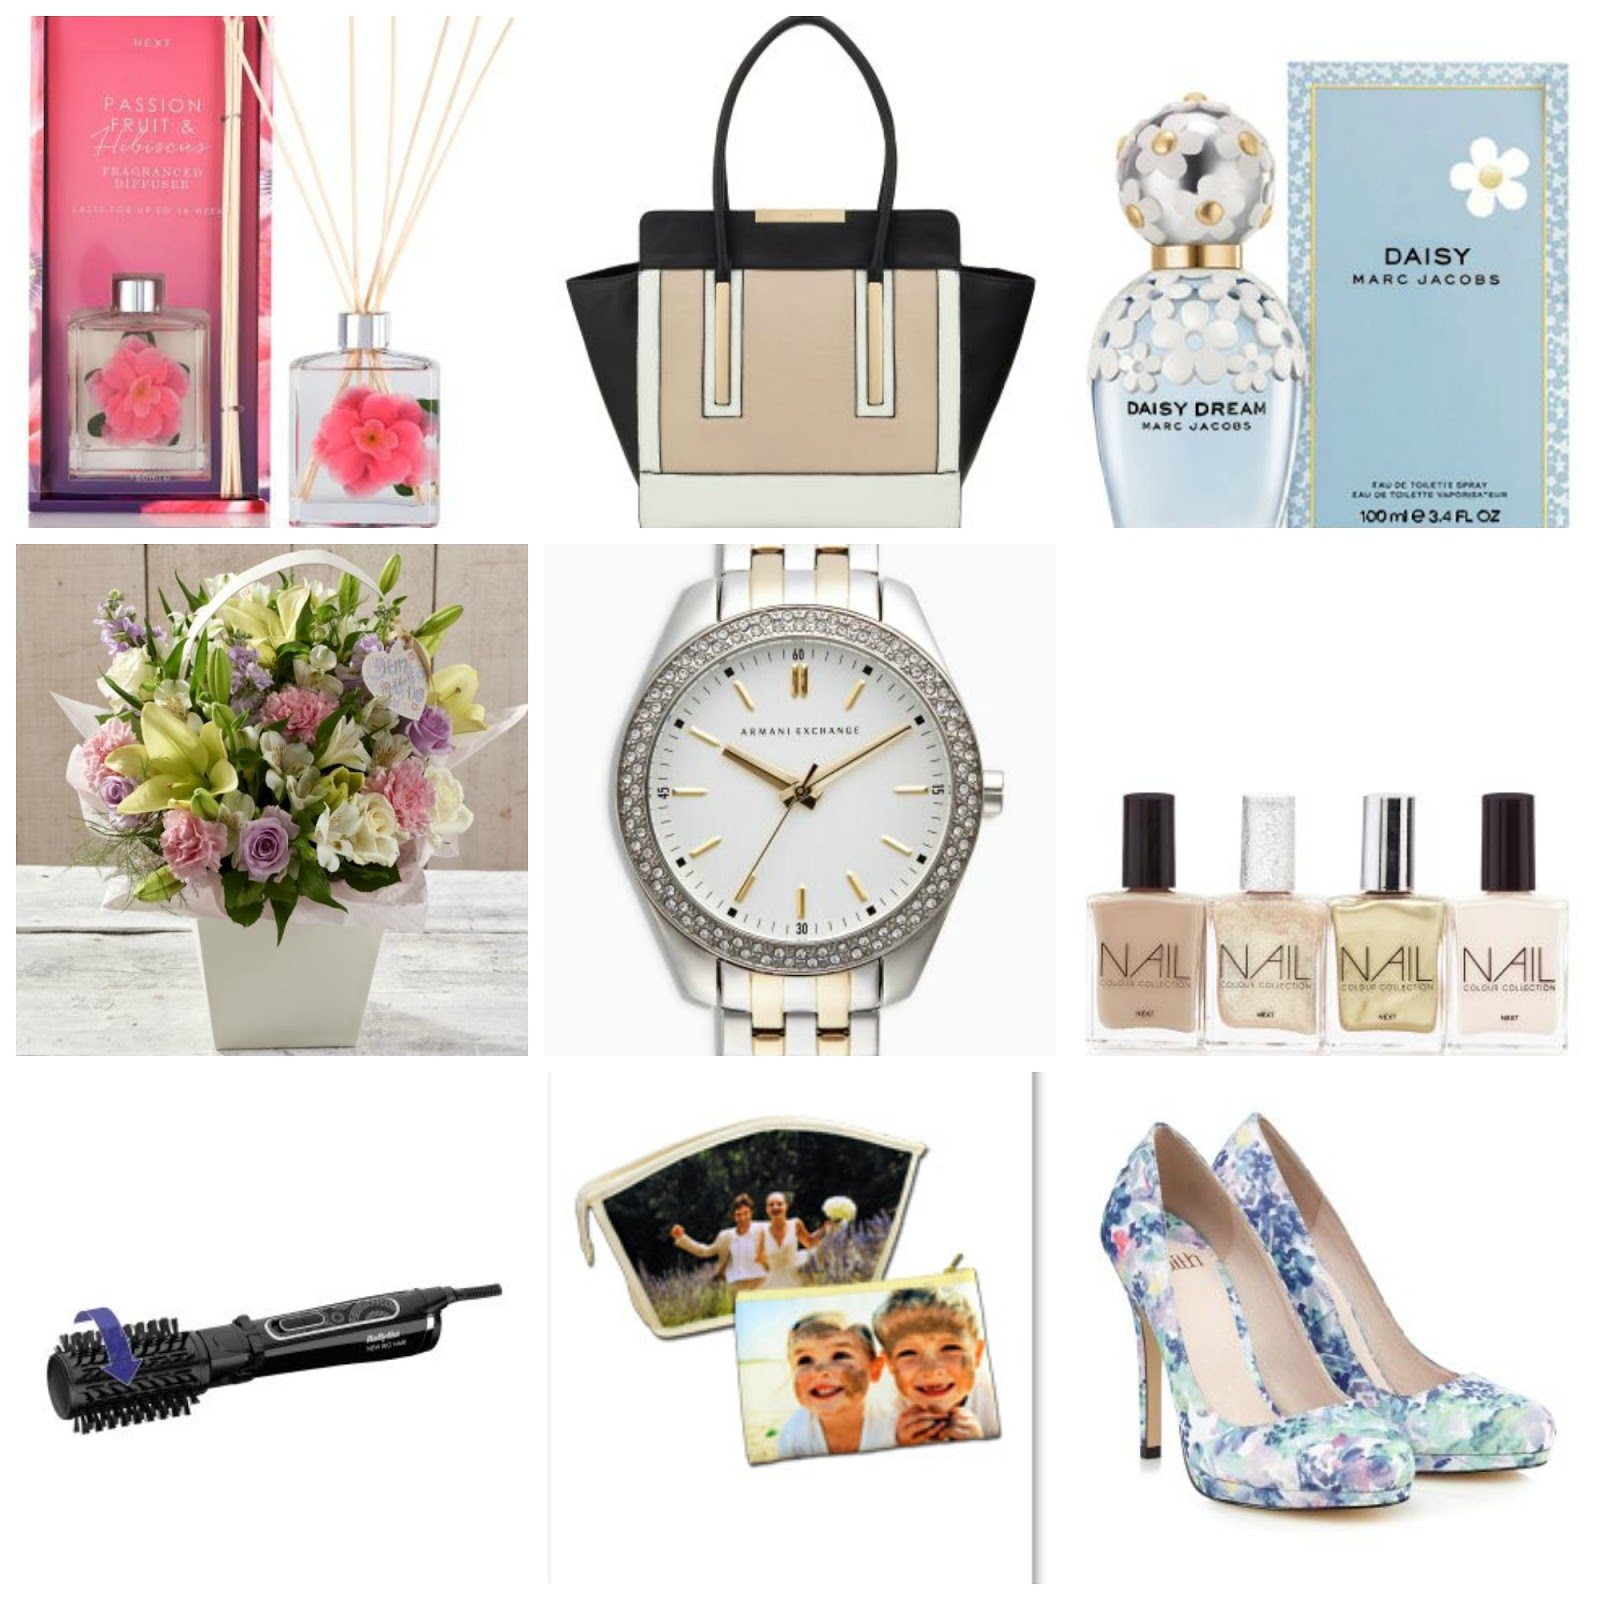 Mothers Day Gift Guide with Next